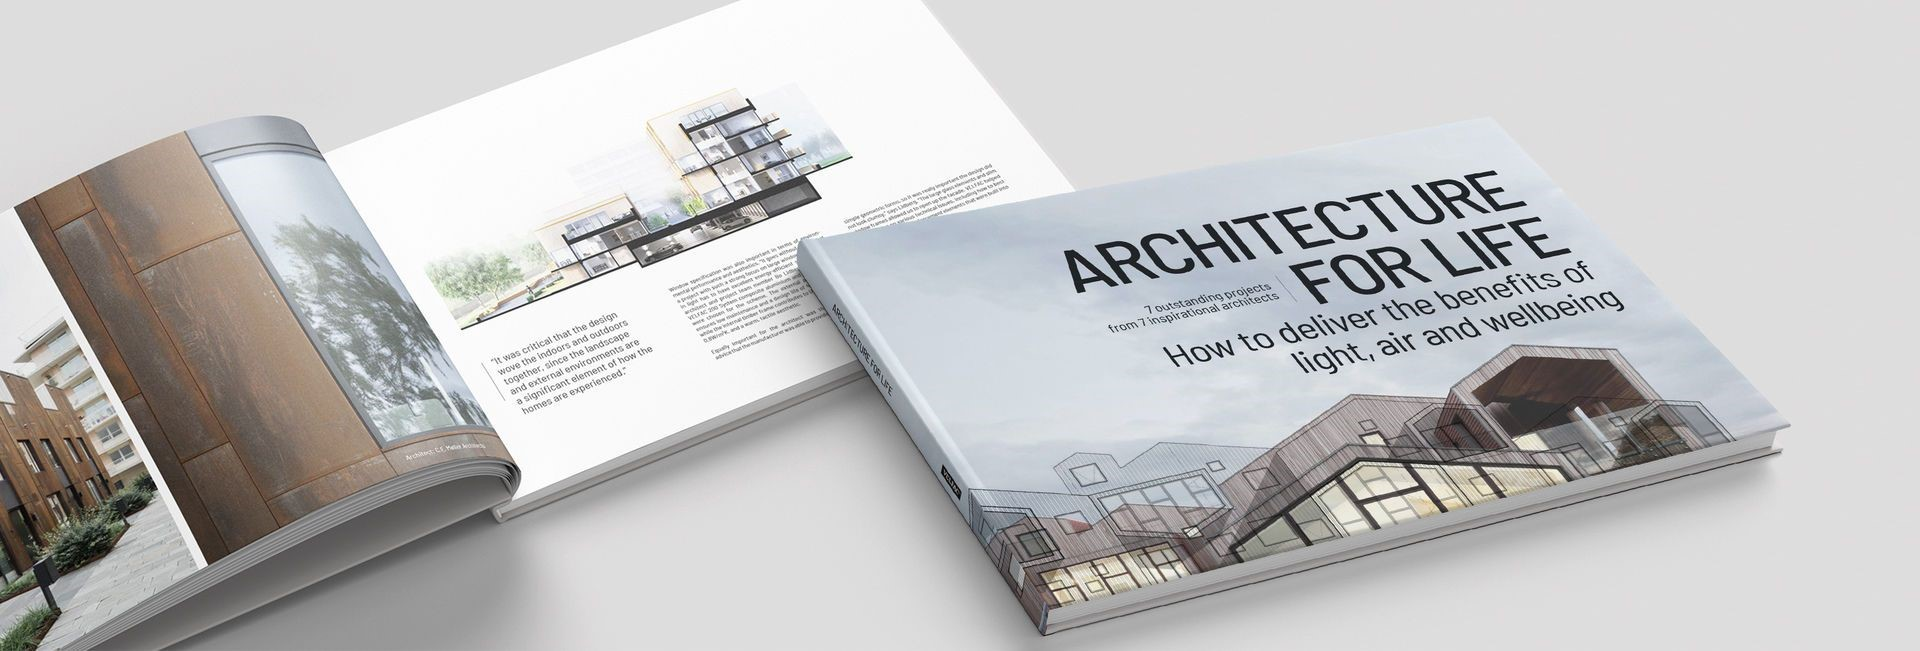 Architecture for life